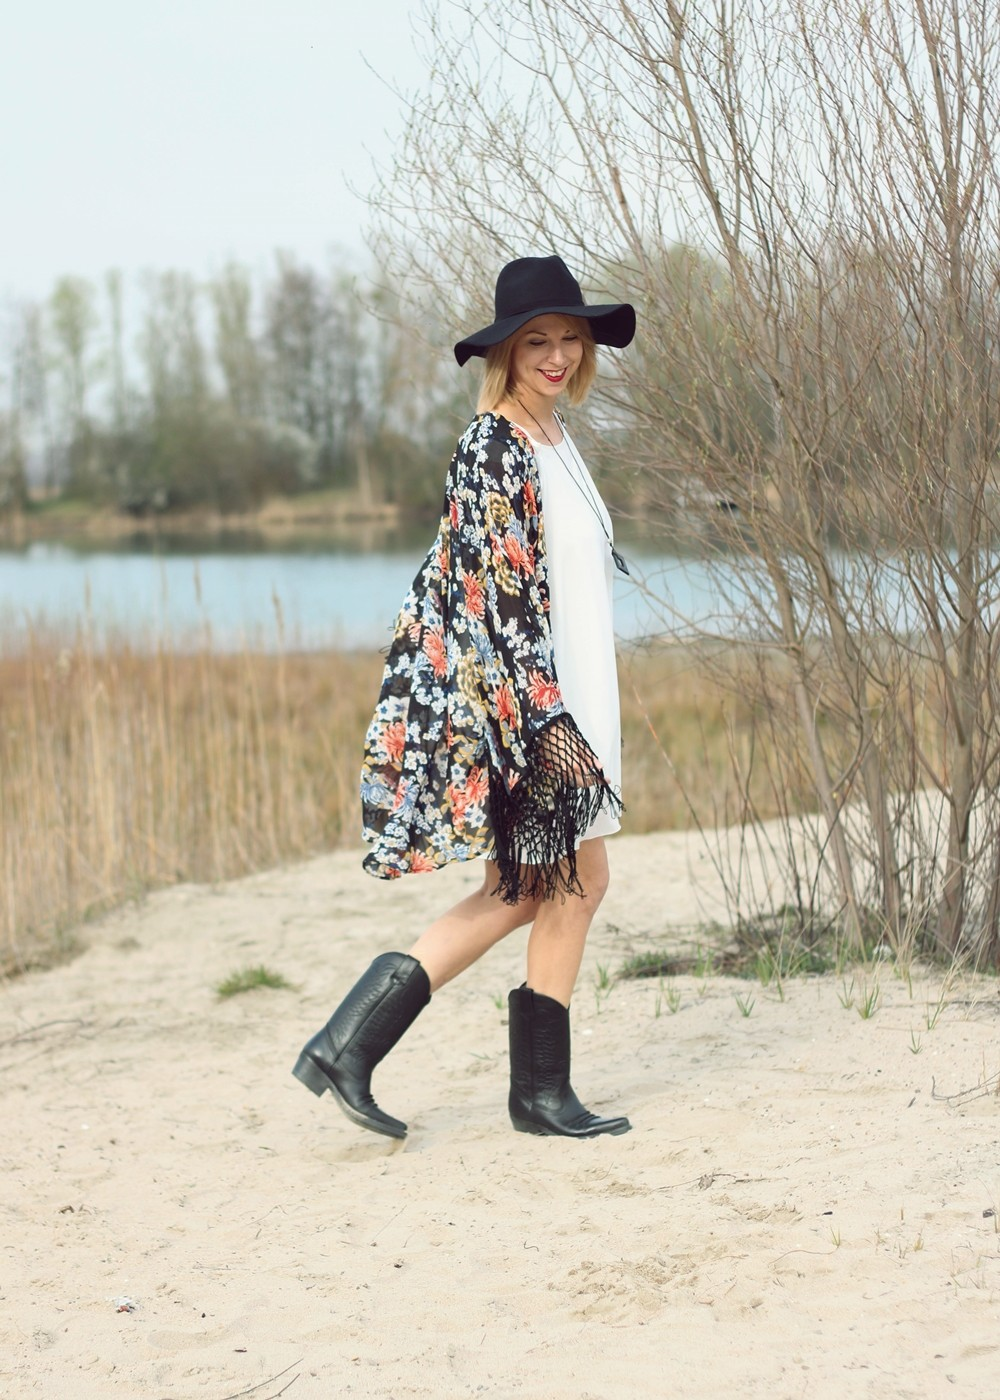 Fashionblogger Outfit Kimono weisses Kleid Cowboystiefel Schlapphut (6)